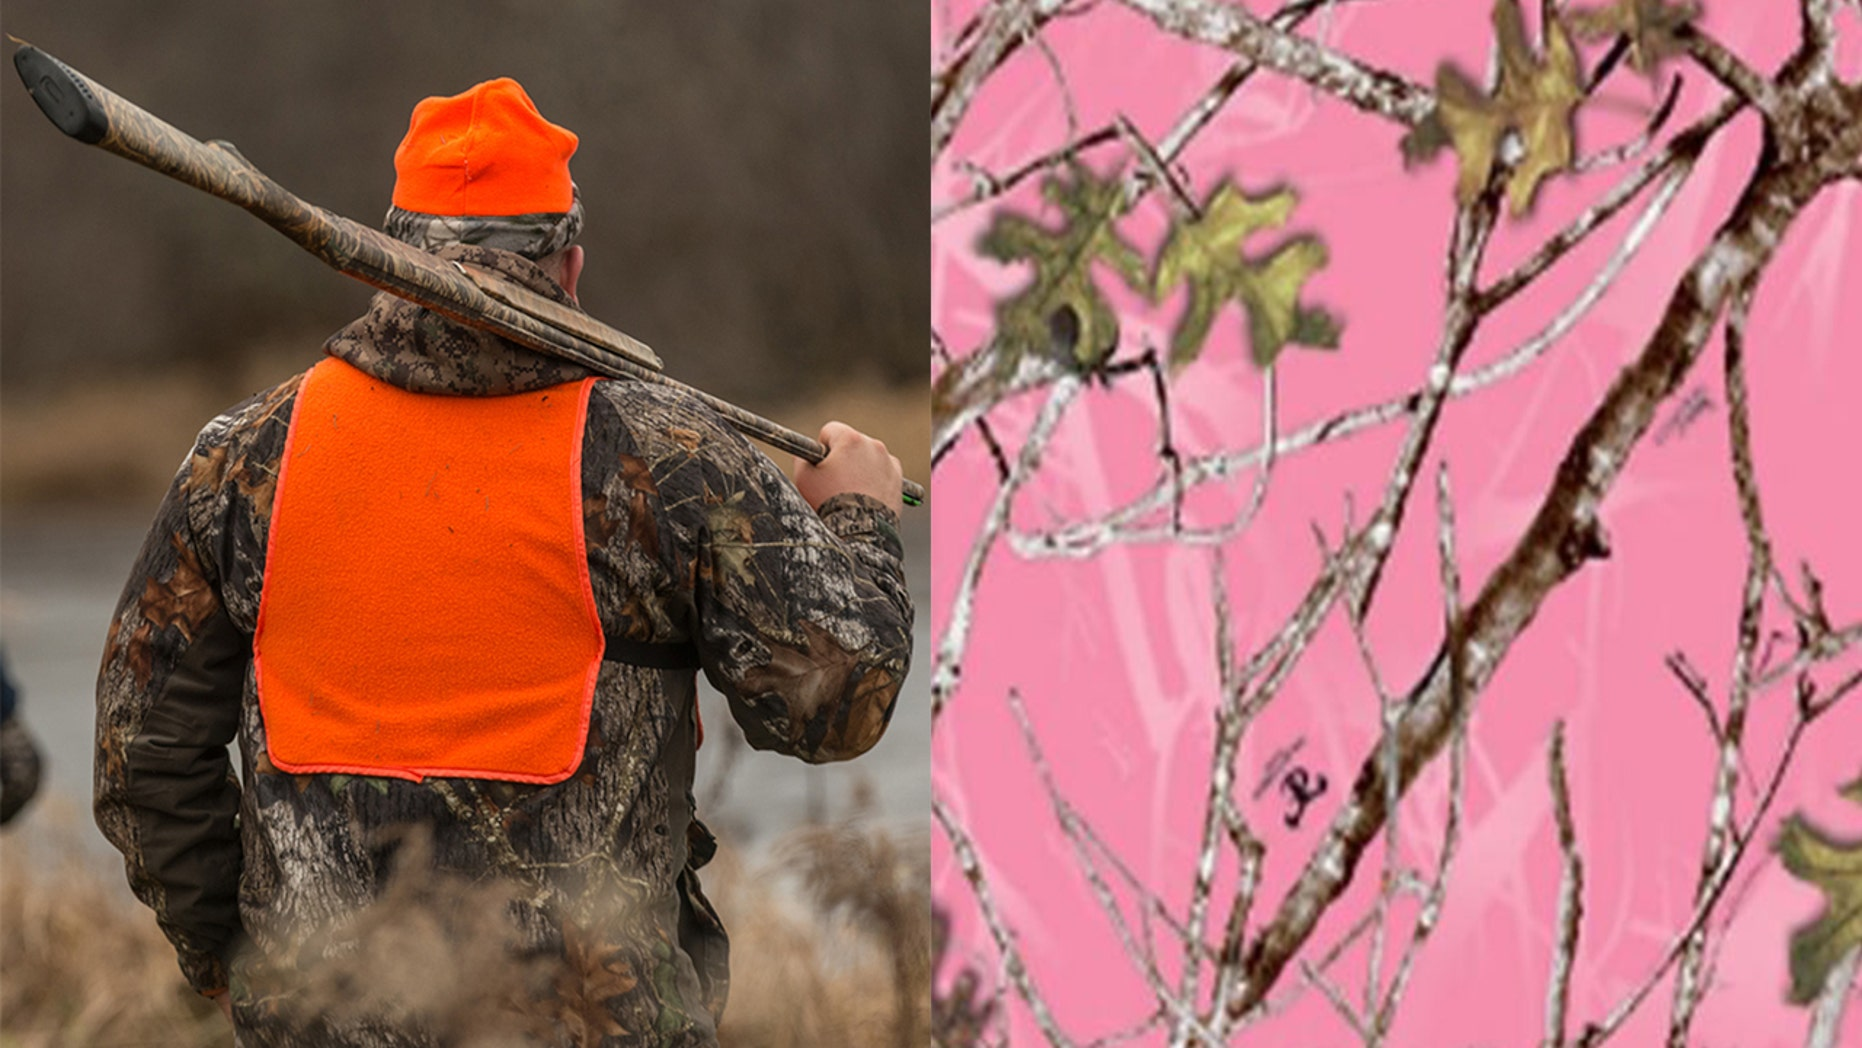 A memo asking for pink to be a legal hunting color has been attacked on social media for its comments about female fashion.